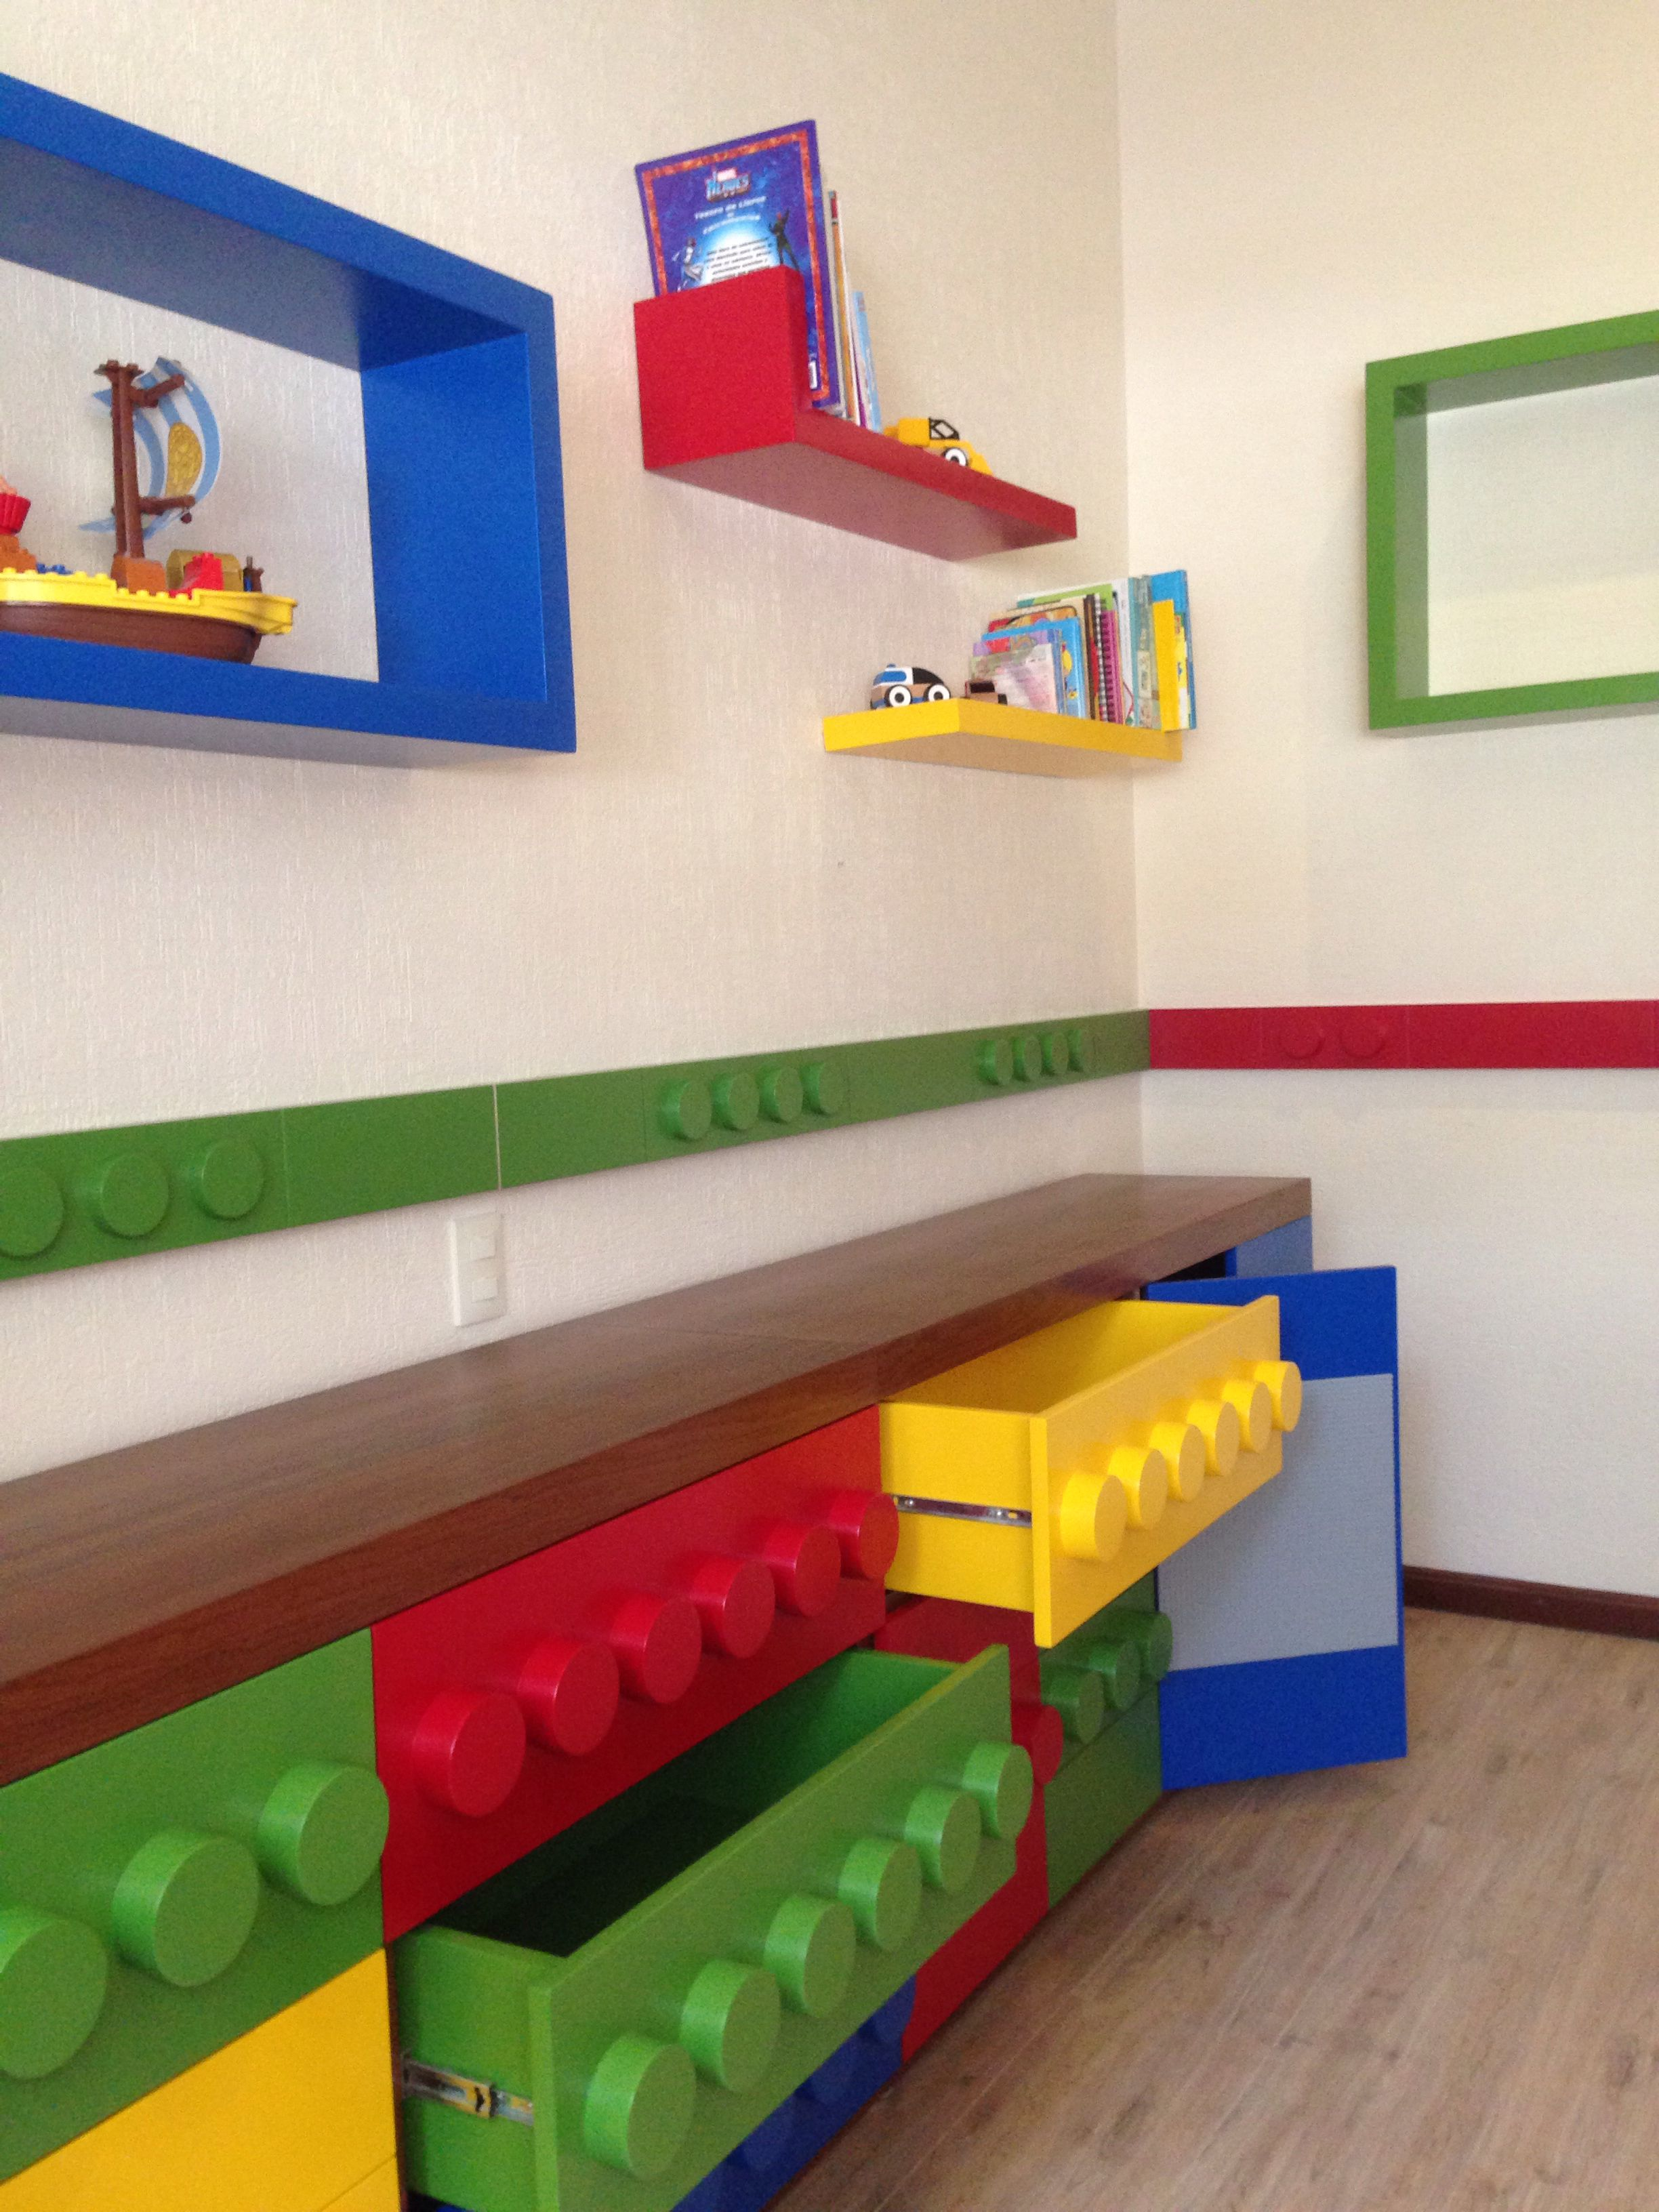 Cuarto de lego cool my job pinterest legos for Repisas recicladas